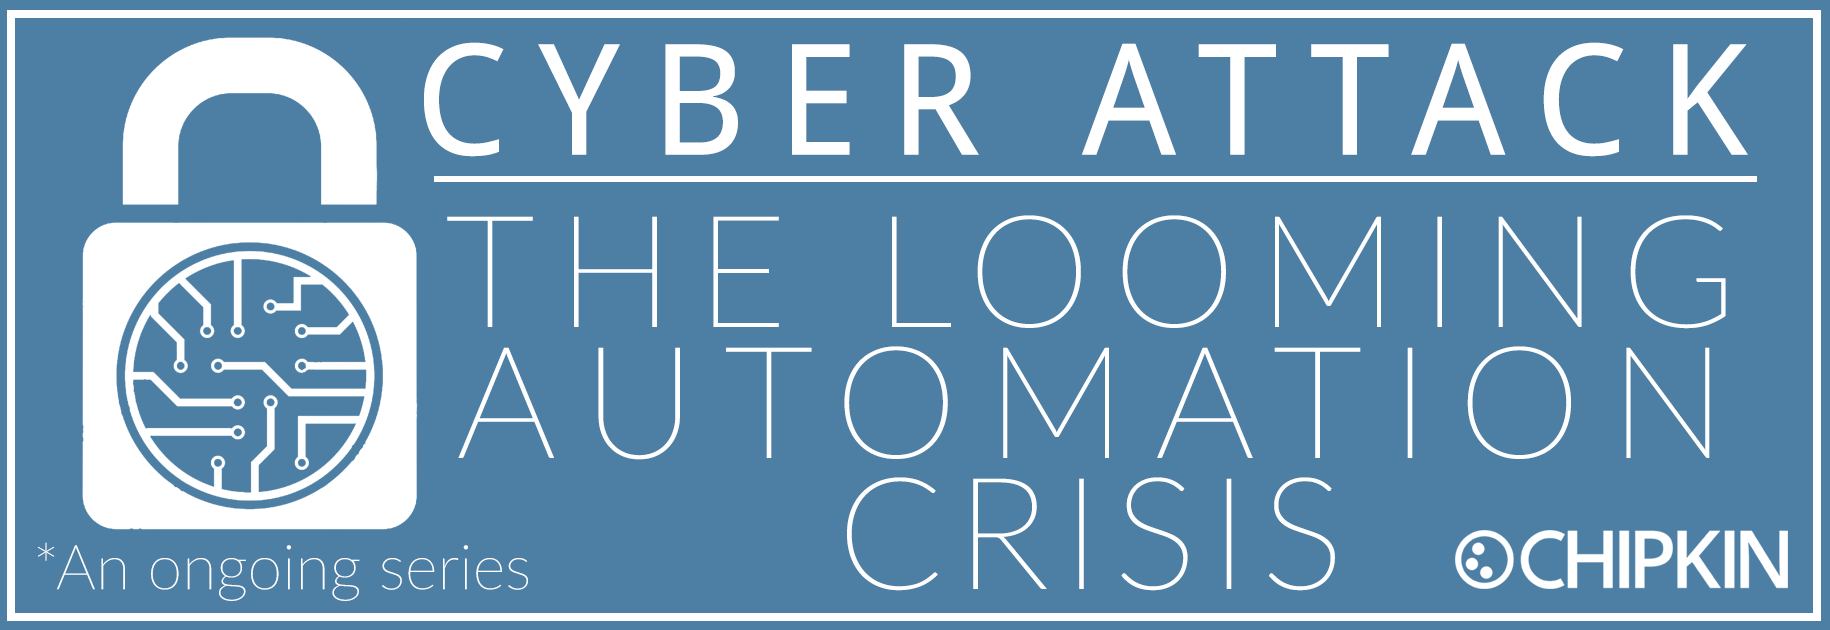 Cyber Attack; The Looming Automation Crisis